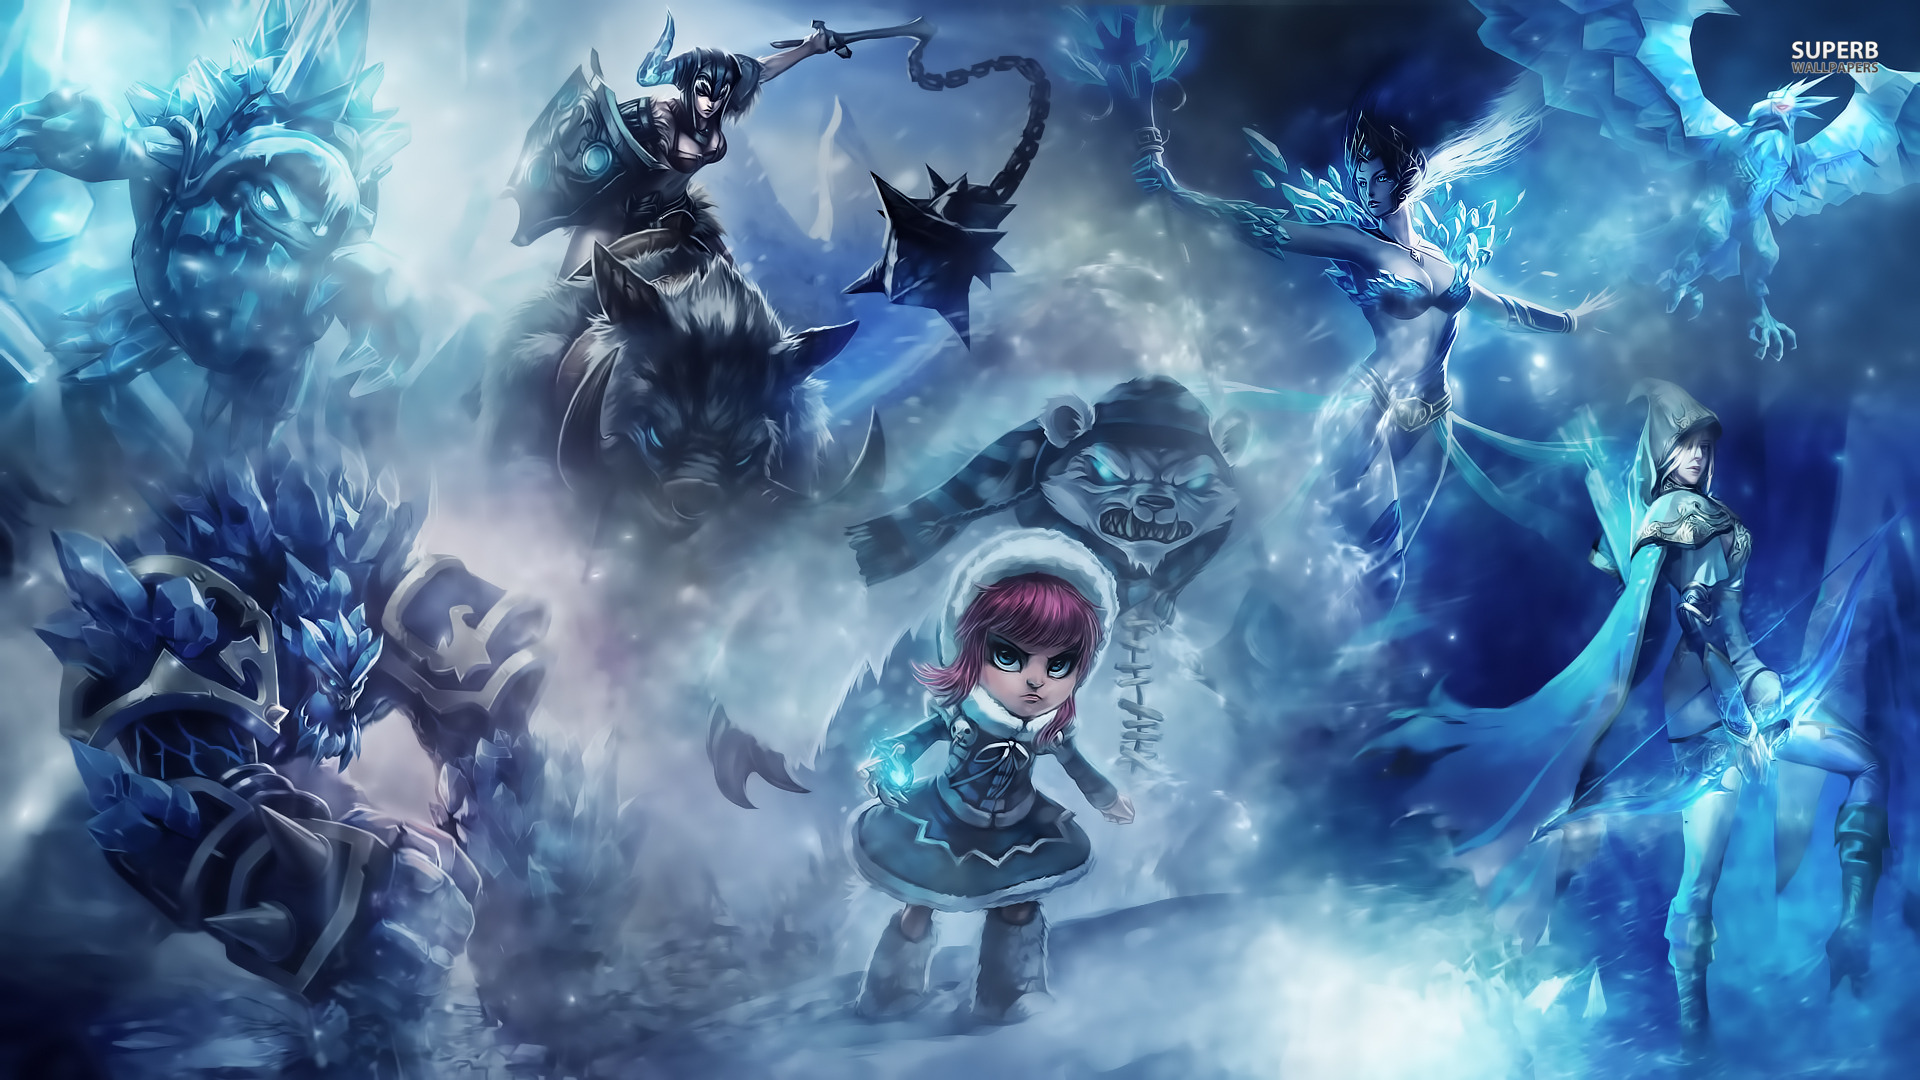 Broken Screen League of Legends Wallpaper Full HD 1920x1080